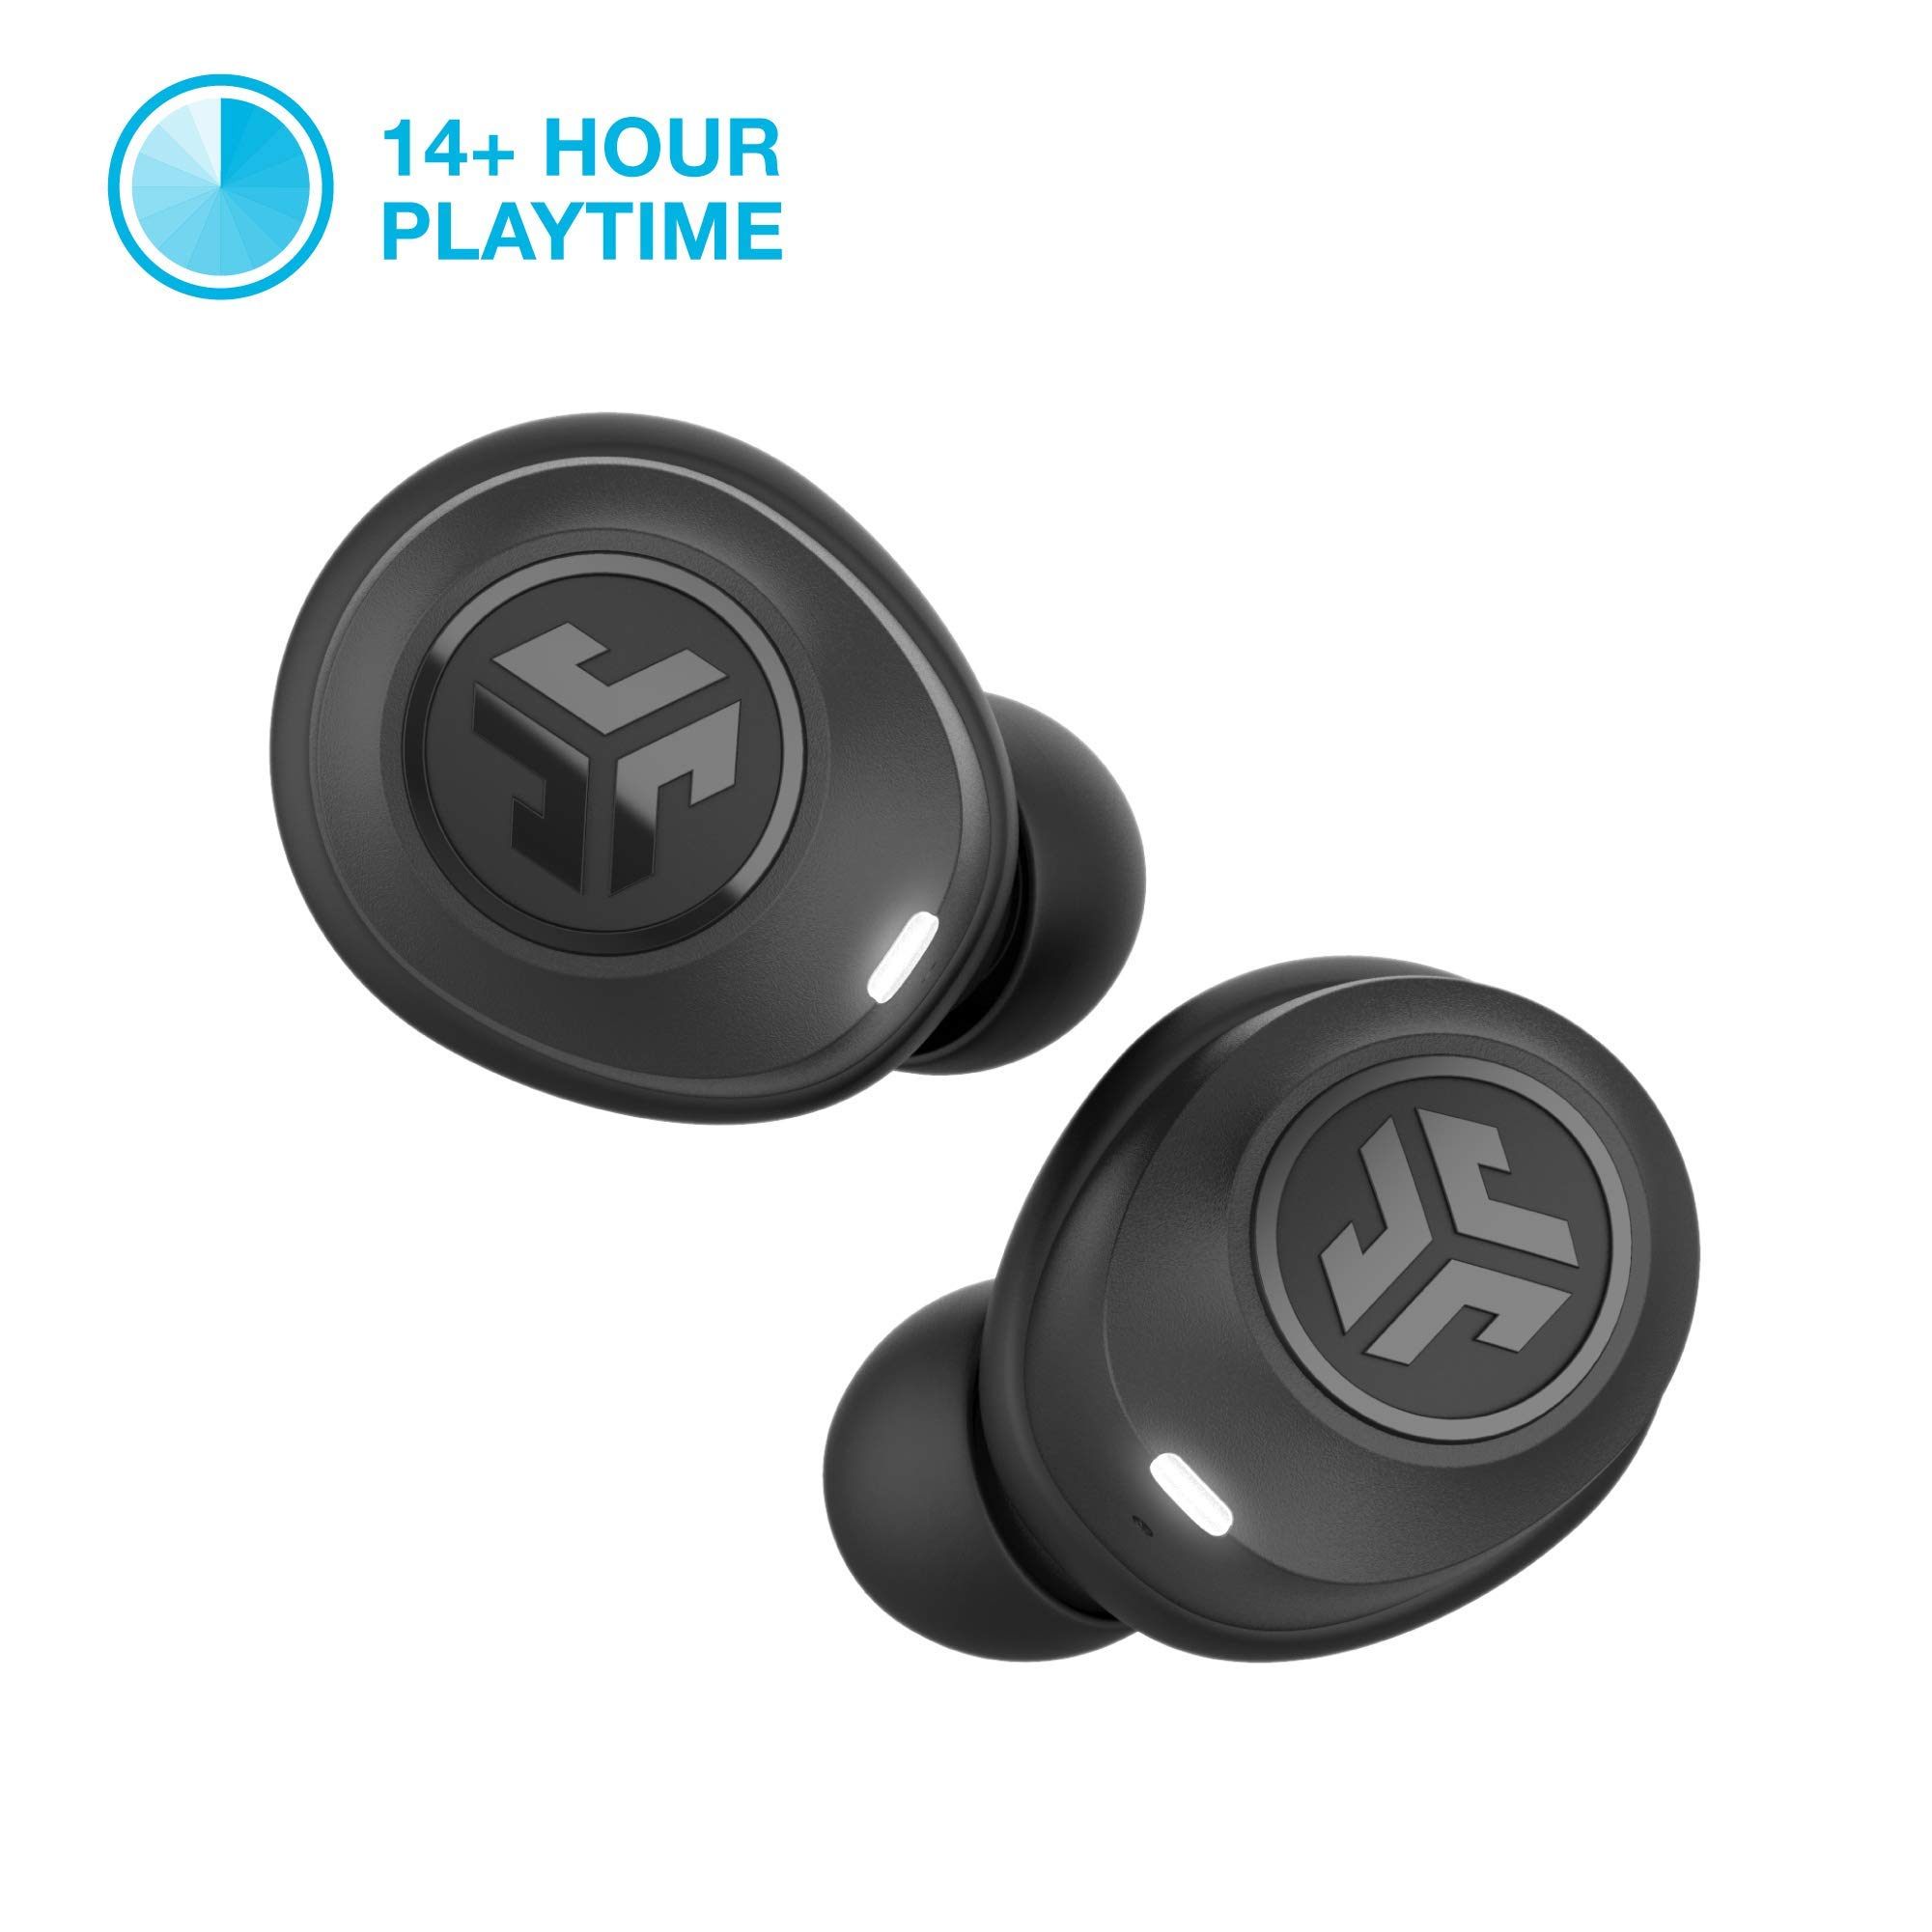 JLab Audio JBuds Air True Wireless Signature Bluetooth Earbuds, Charging Case, Black, IP55 Sweat Resistance, Bluetooth 5.0 Connection (Renewed) by JLAB